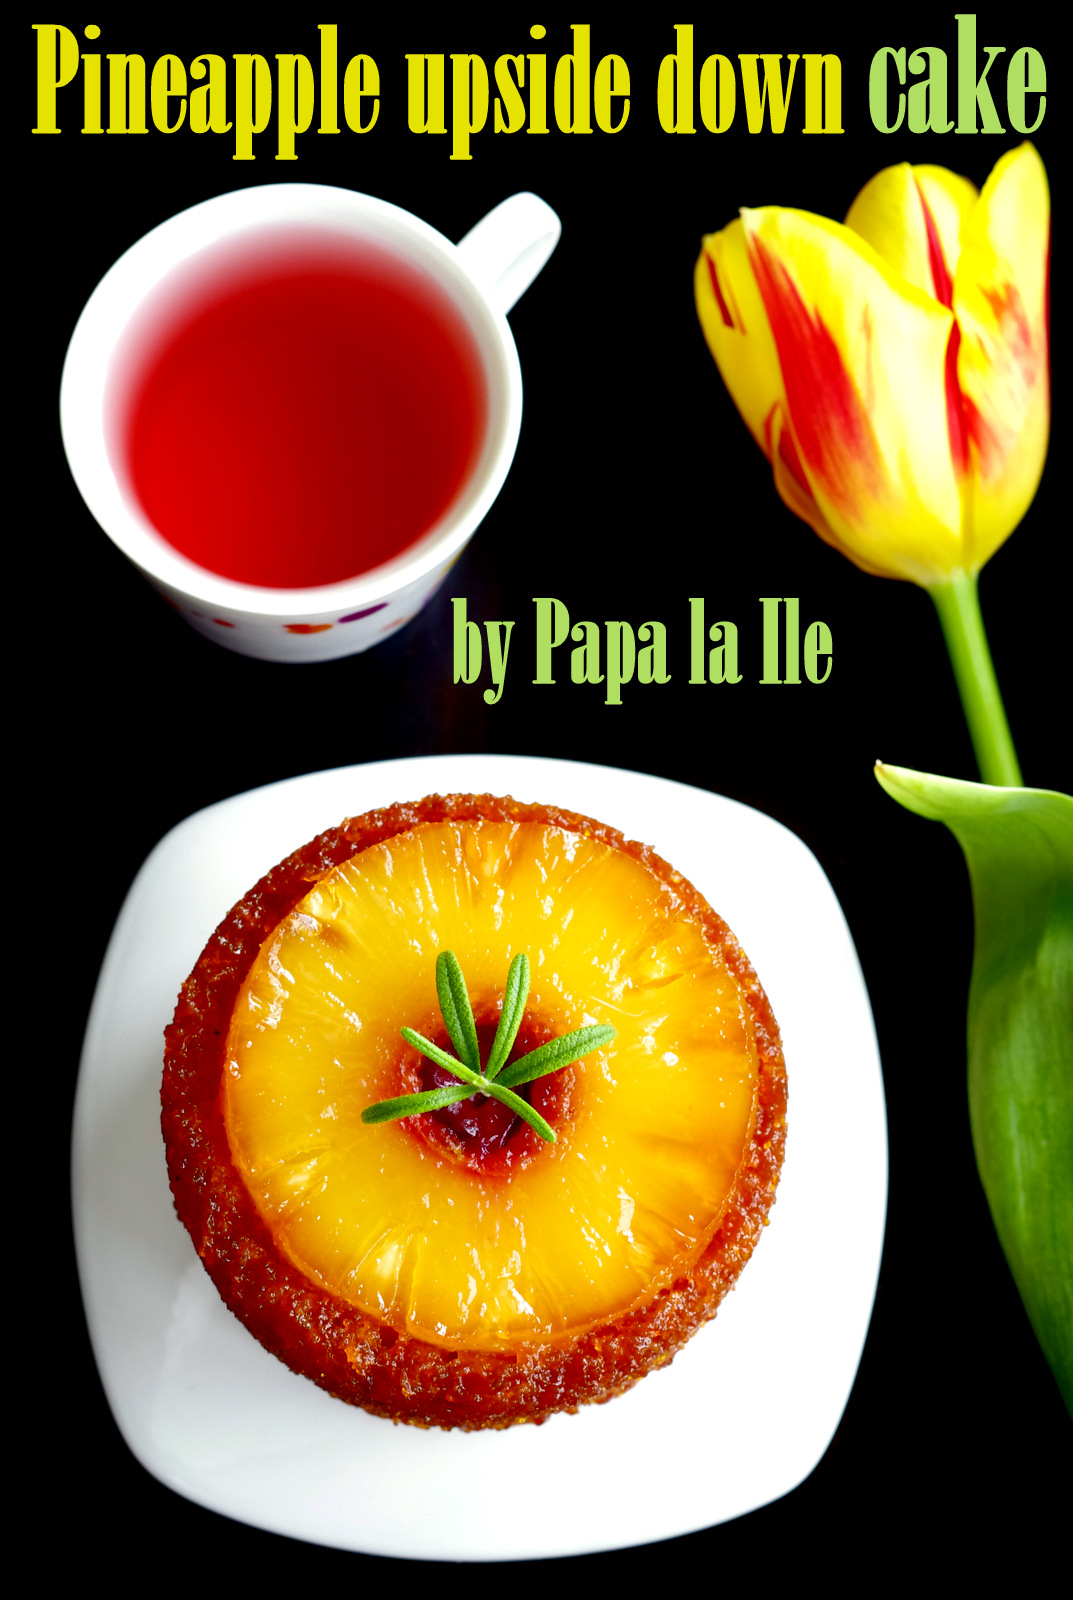 Pineapple upside down cake…